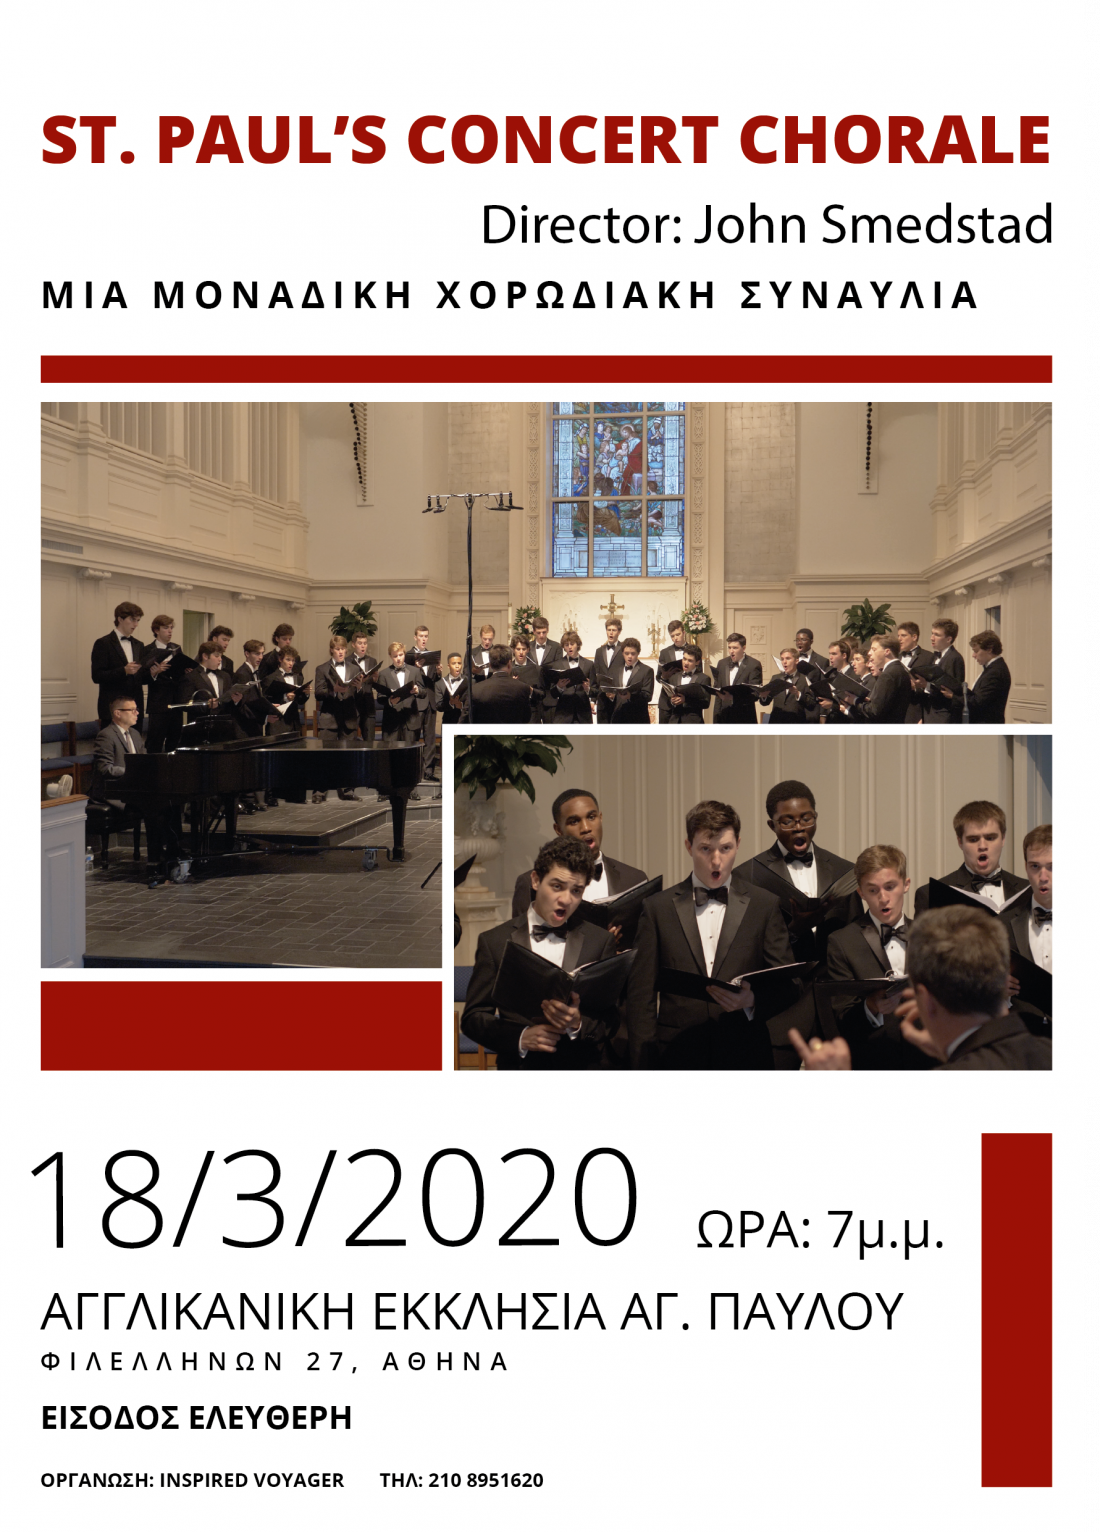 ST PAUL CHORALE poster